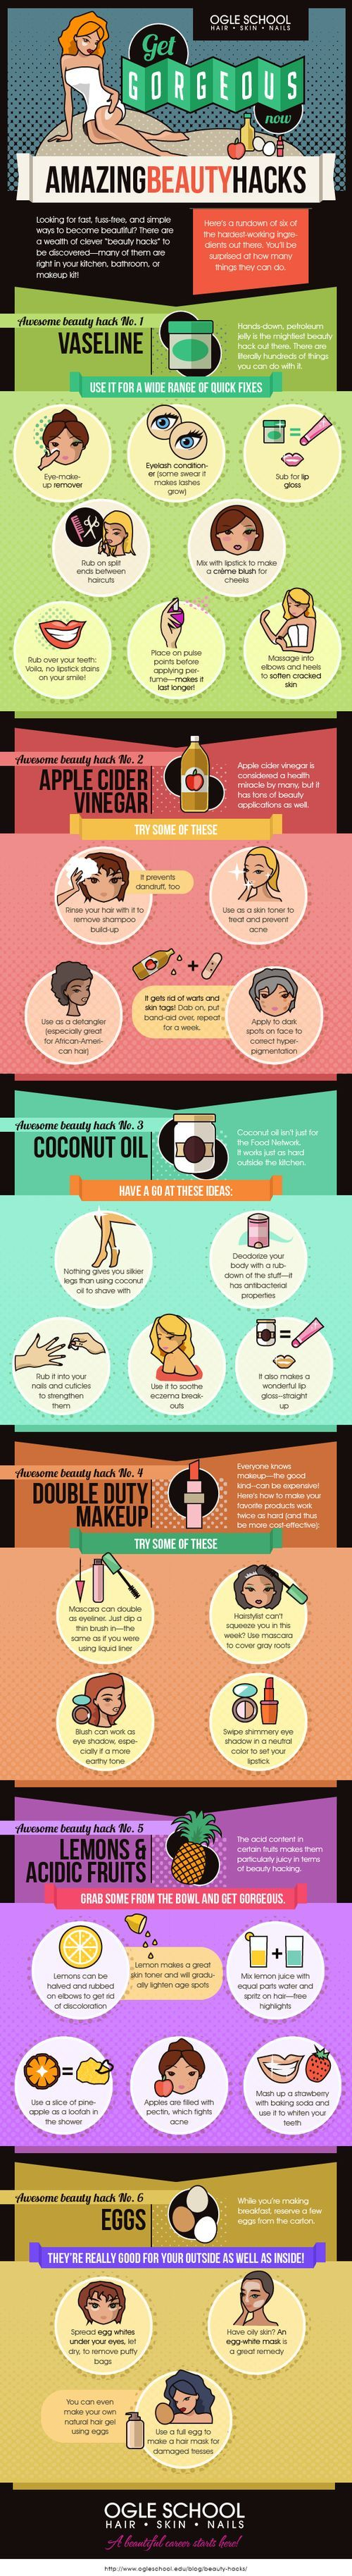 Get Gorgeous Now: Six Amazing Beauty Hacks [Infographic] on imgfave